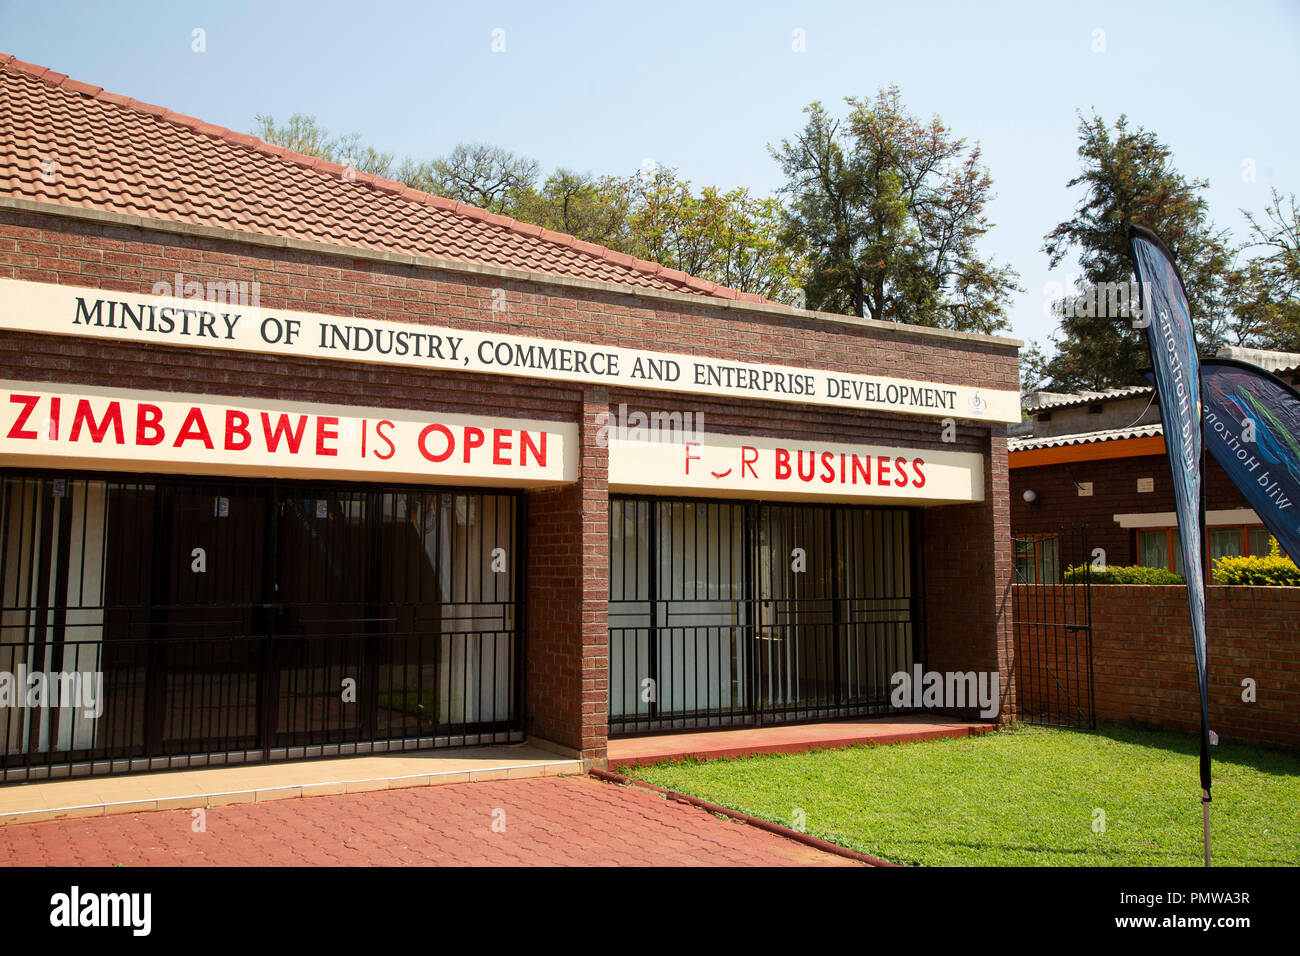 Building at the Zimbabwe International Exhibition Centre (ZIEC) in Bulawayo, Zimbabwe. The facade states that Zimbabwe is open for business. - Stock Image